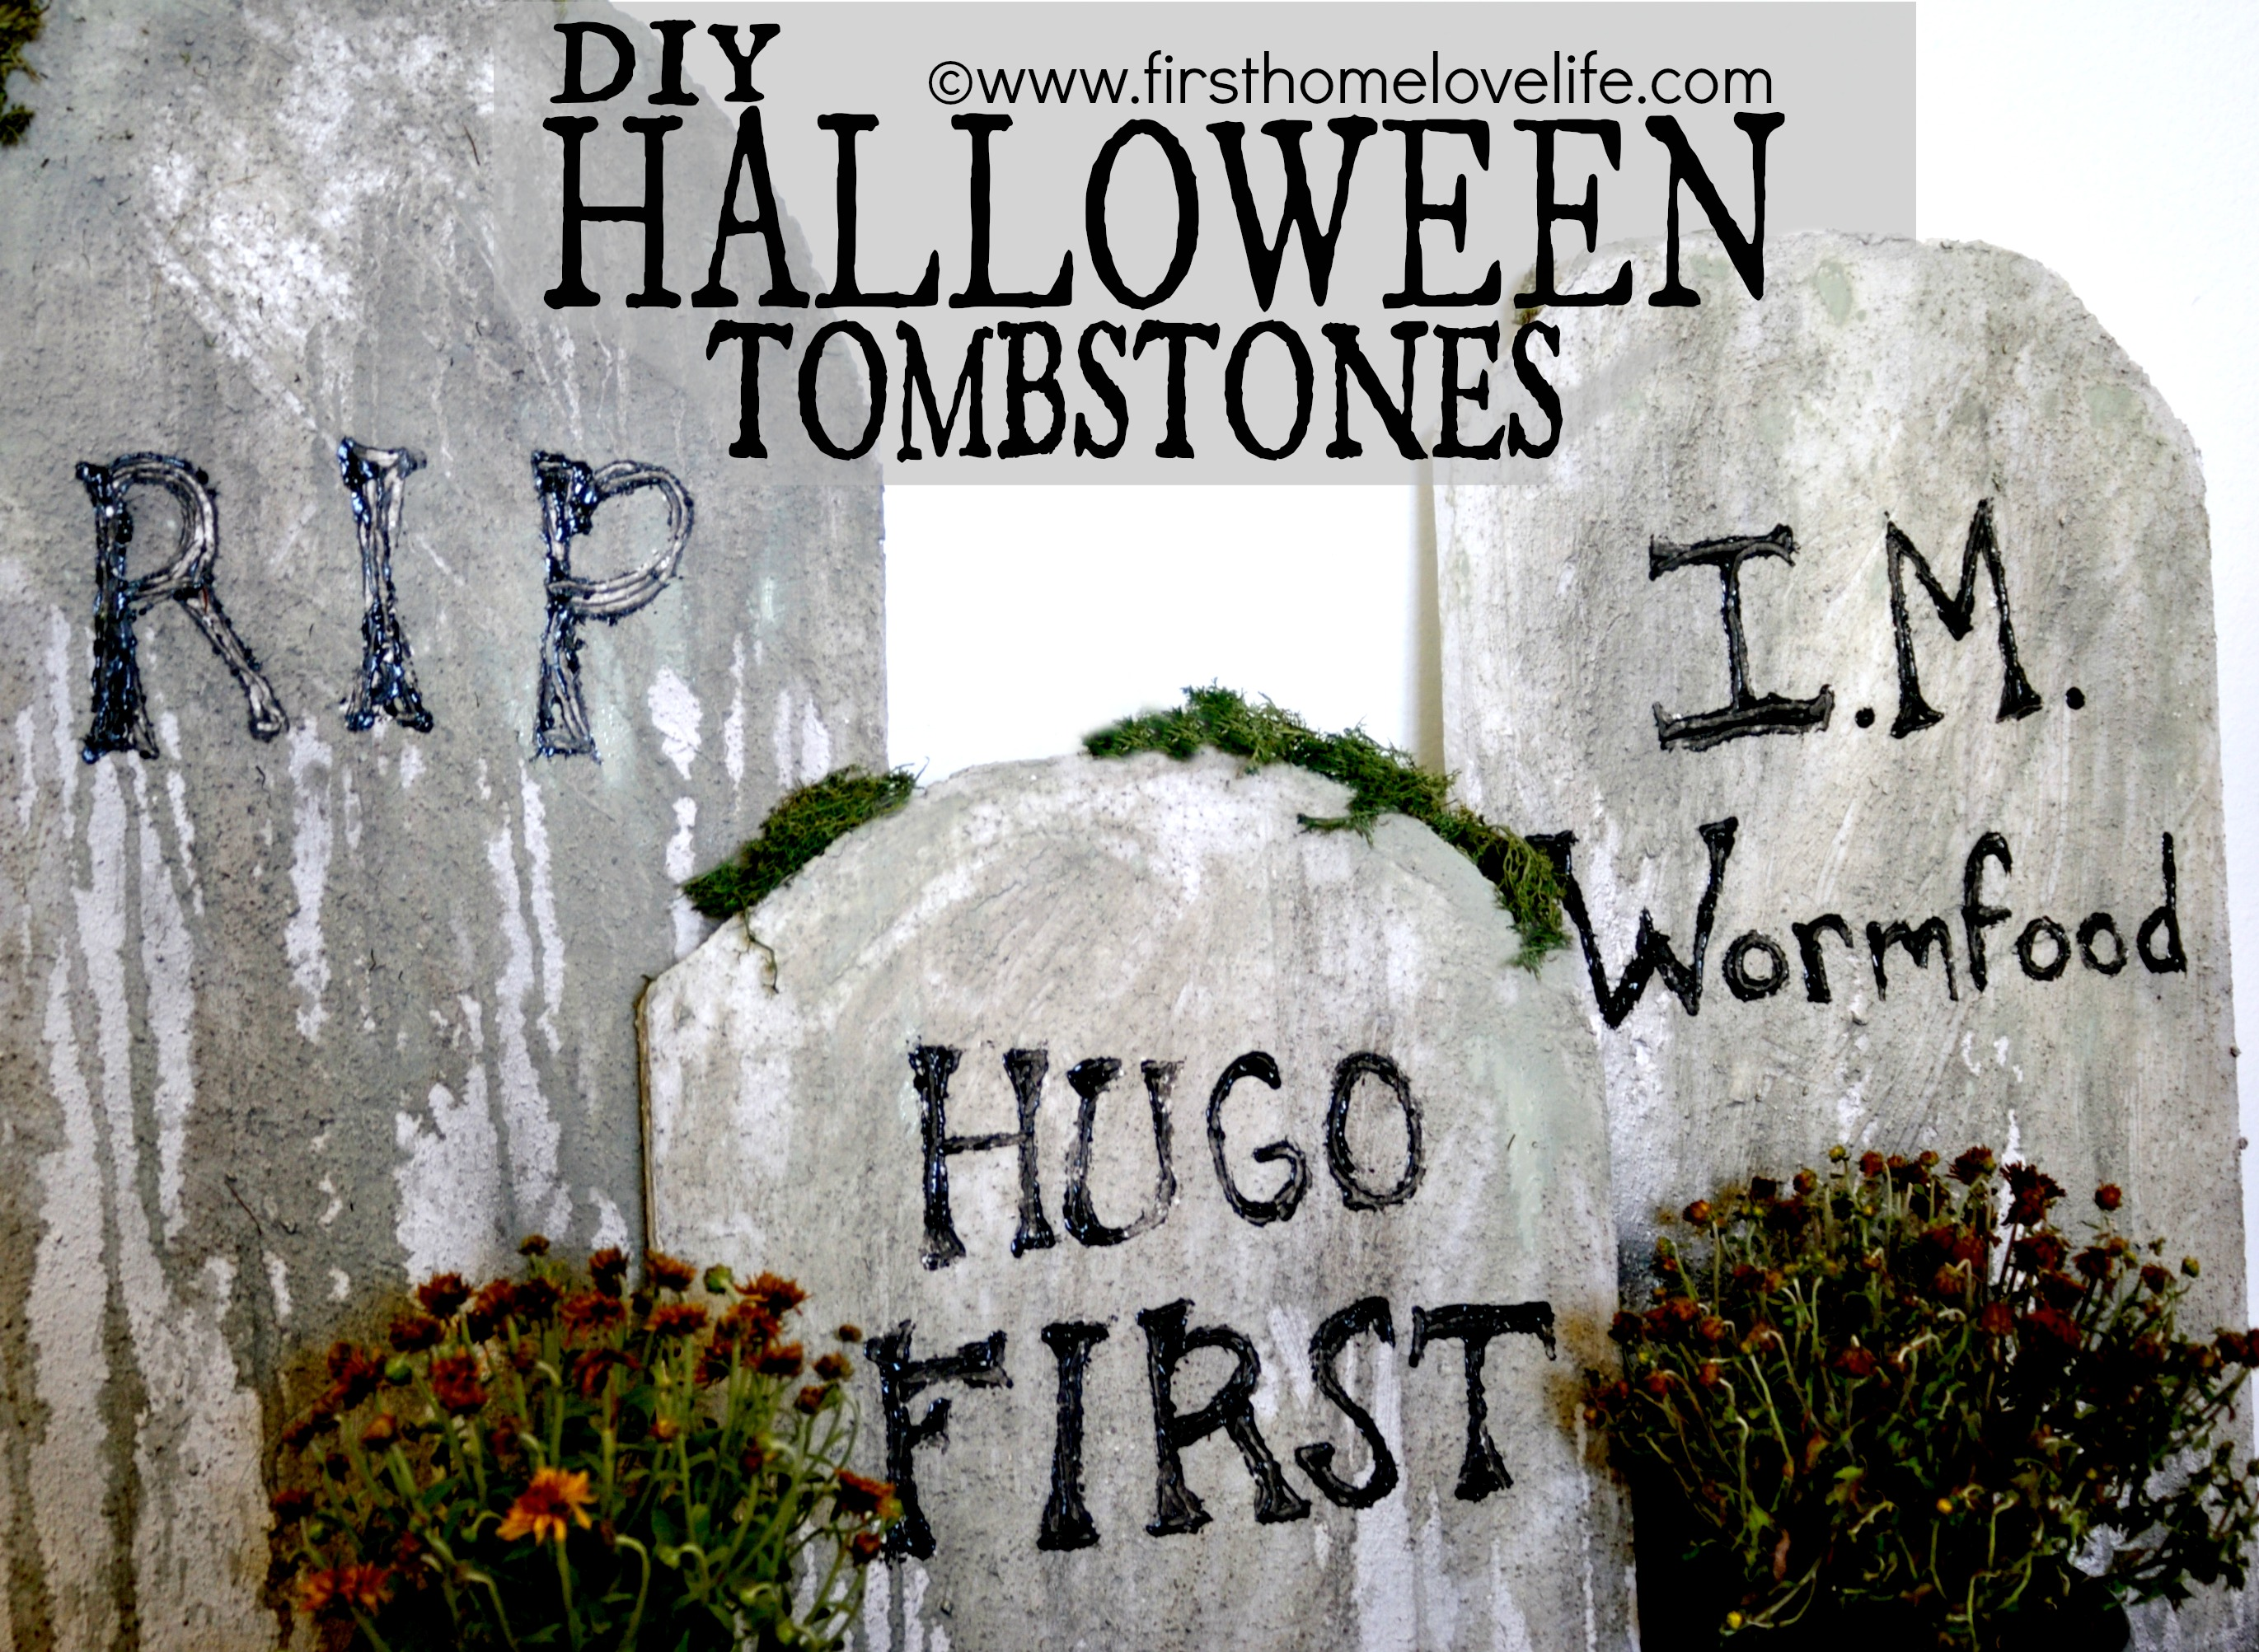 diy halloween tombstones - first home love life